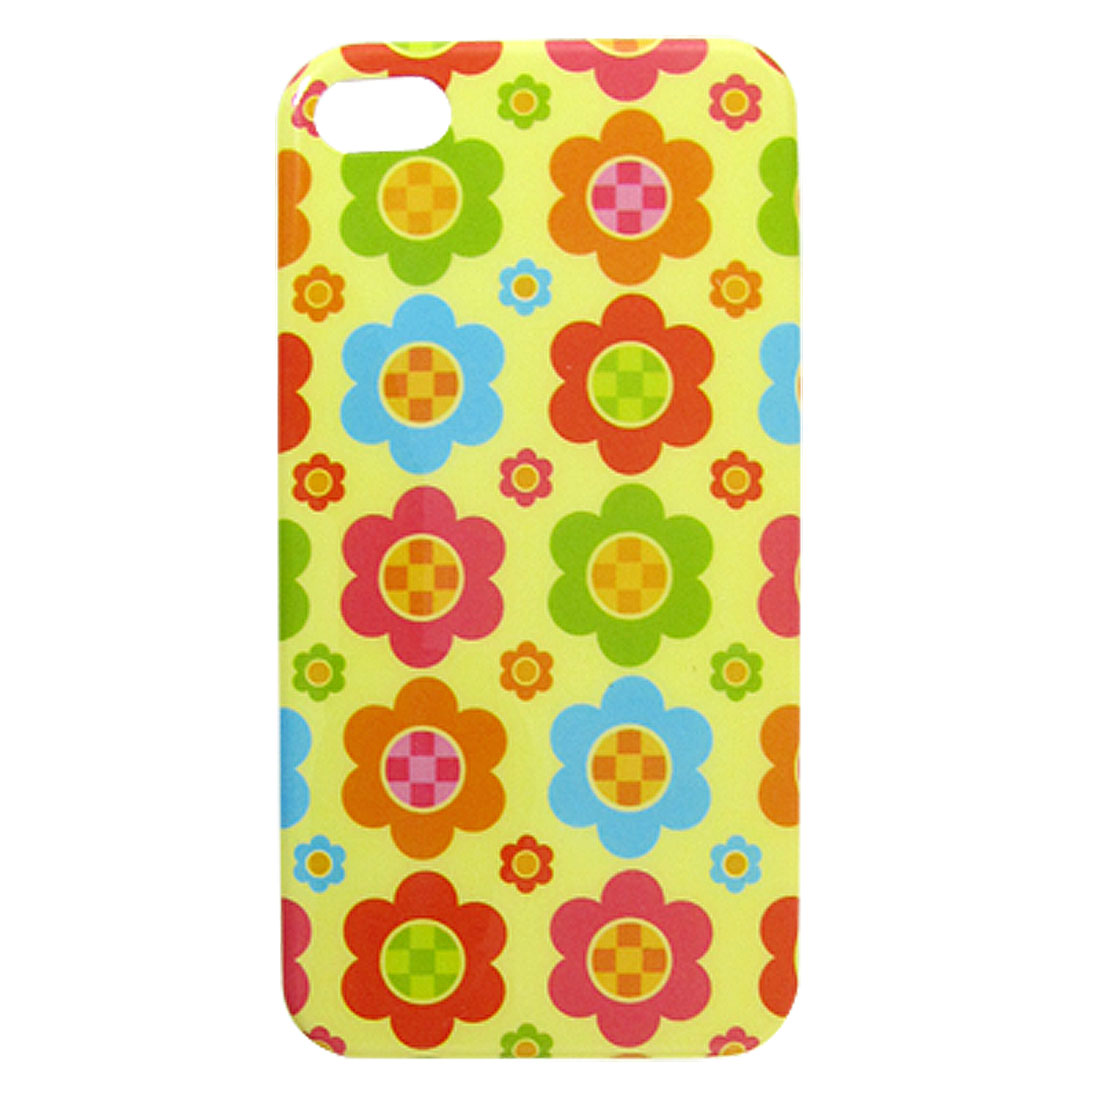 Multicolor Flower Pattern IMD Shell Back Case for iPhone 4 4G 4S